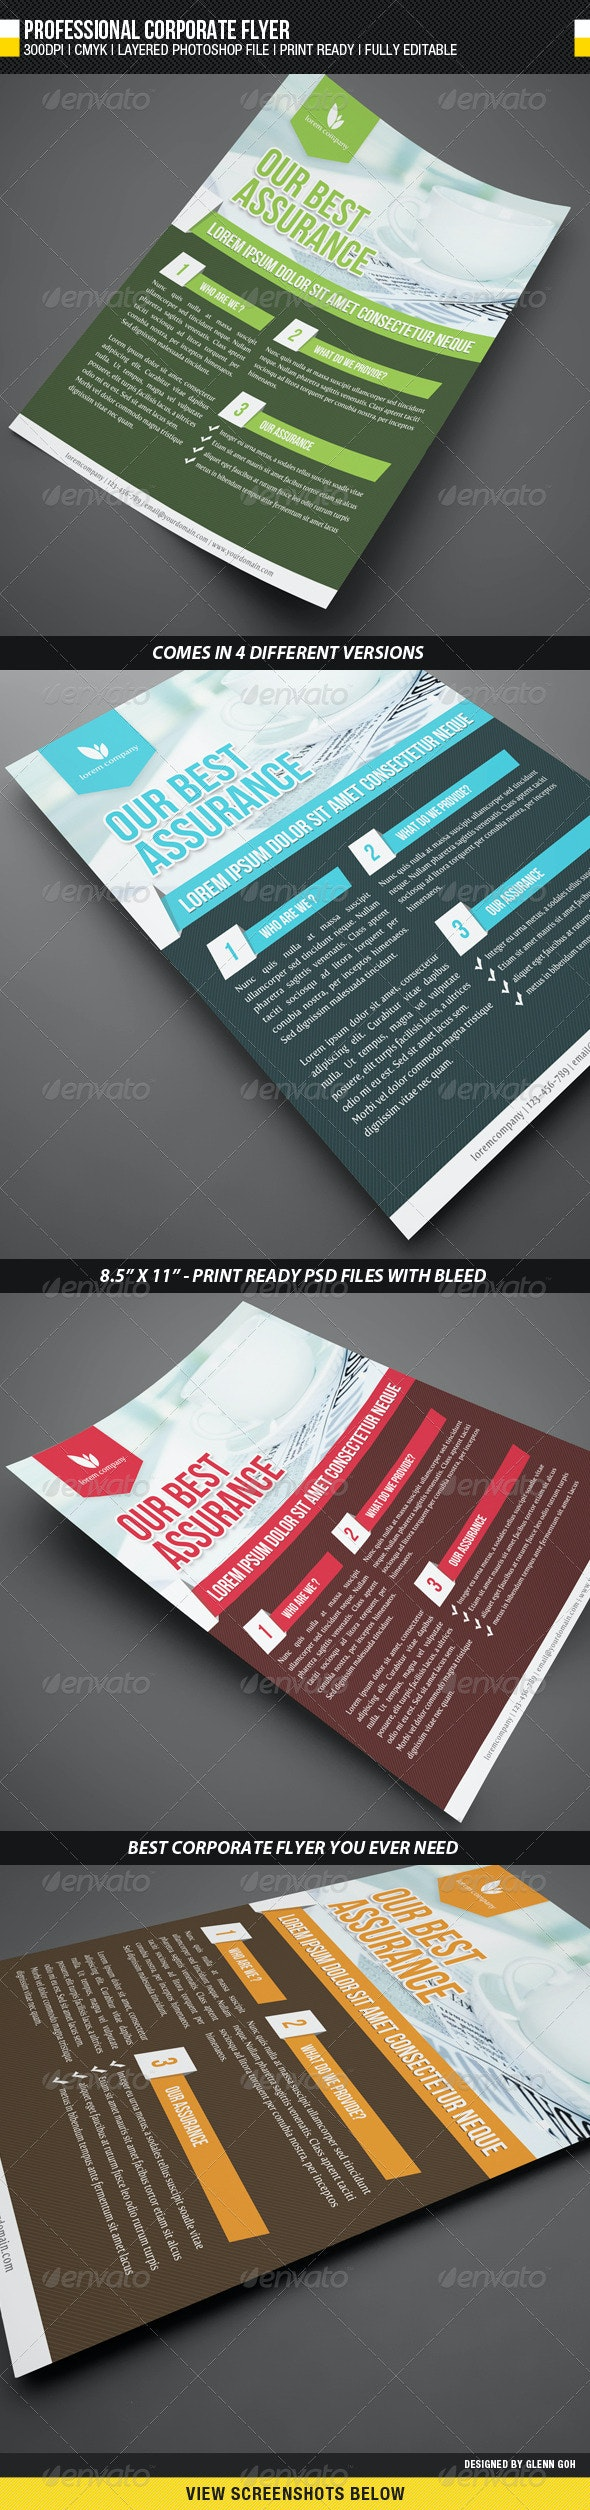 Professional Corporate Flyer - Corporate Flyers